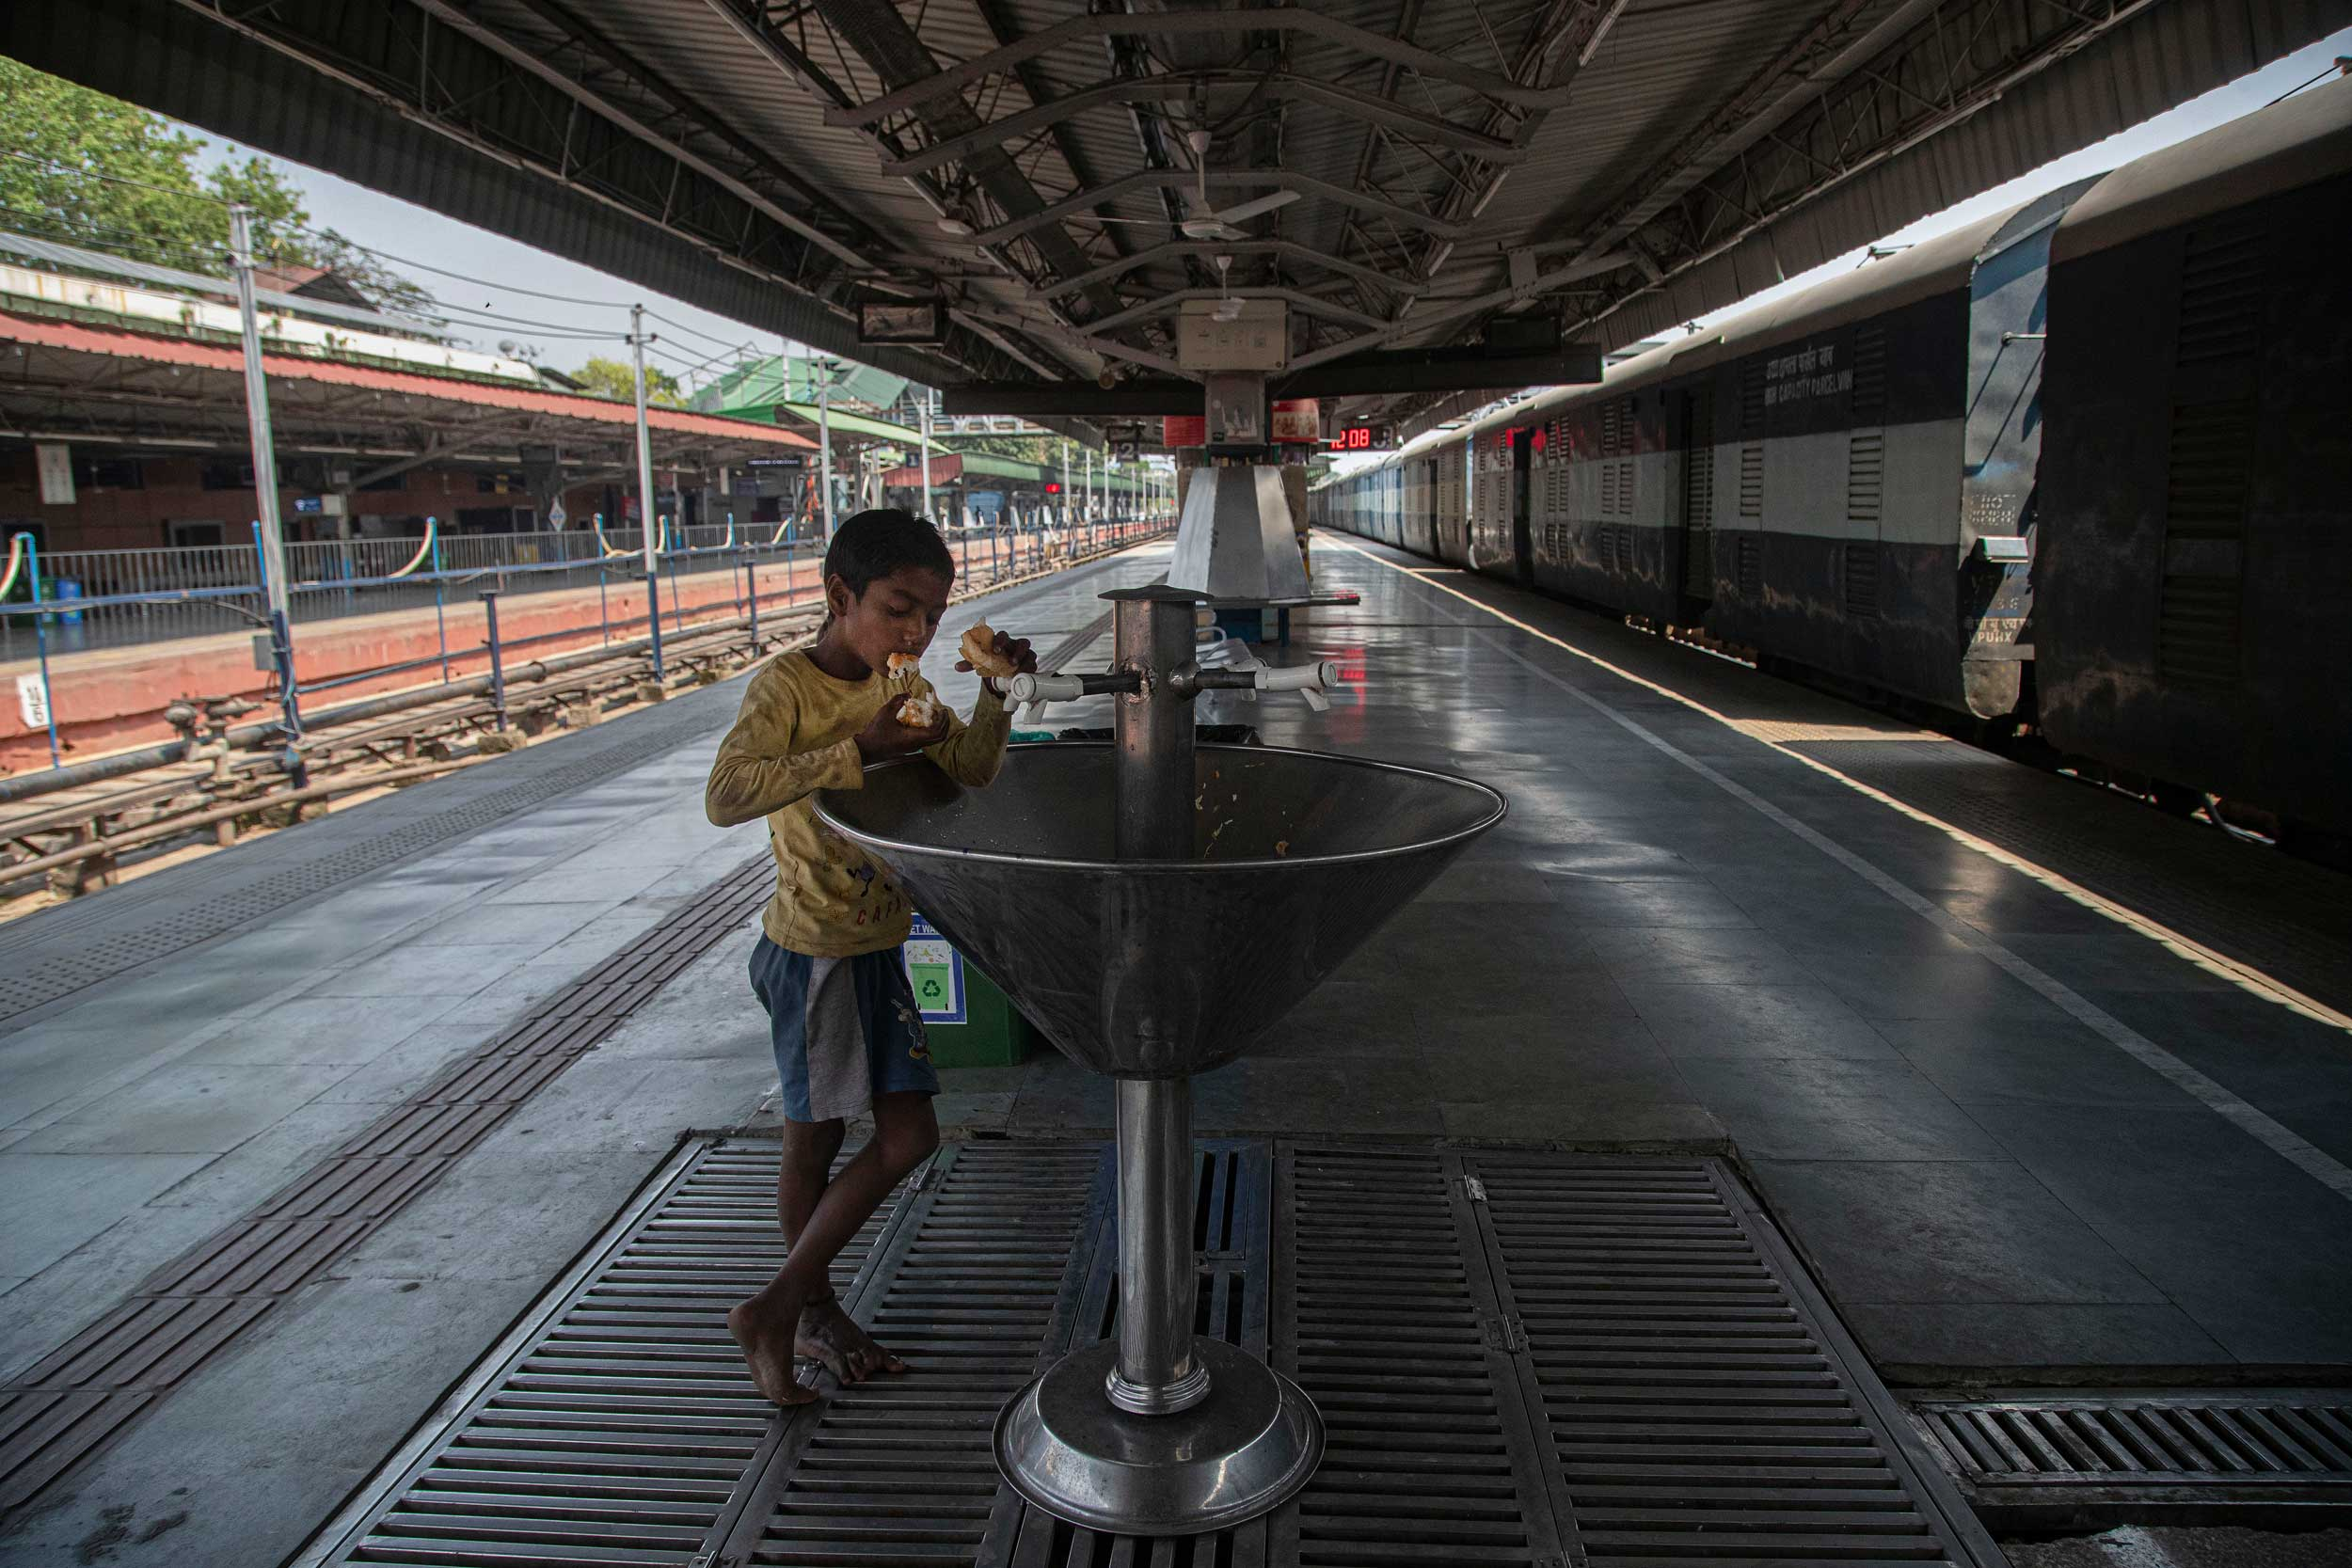 A homeless boy eats bread from a garbage bin at an empty railway station during the lockdown in Guwahati on Wednesday.